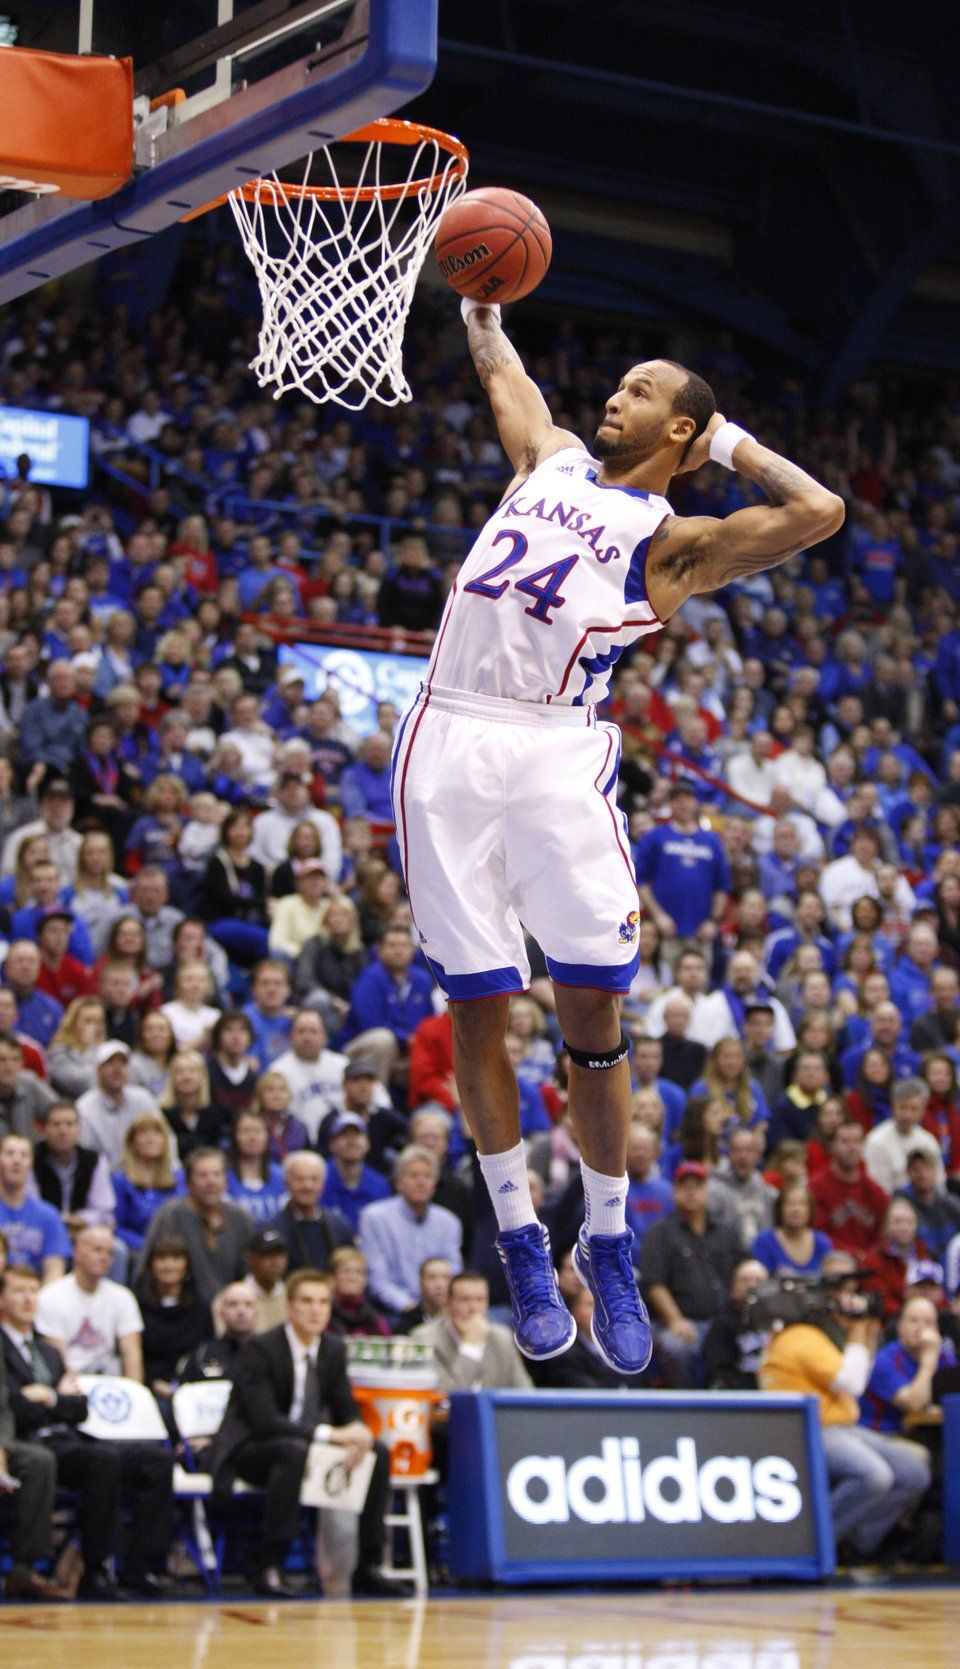 a hand behind his head kansas guard travis releford comes in a hand behind his head kansas guard travis releford comes in for a dunk